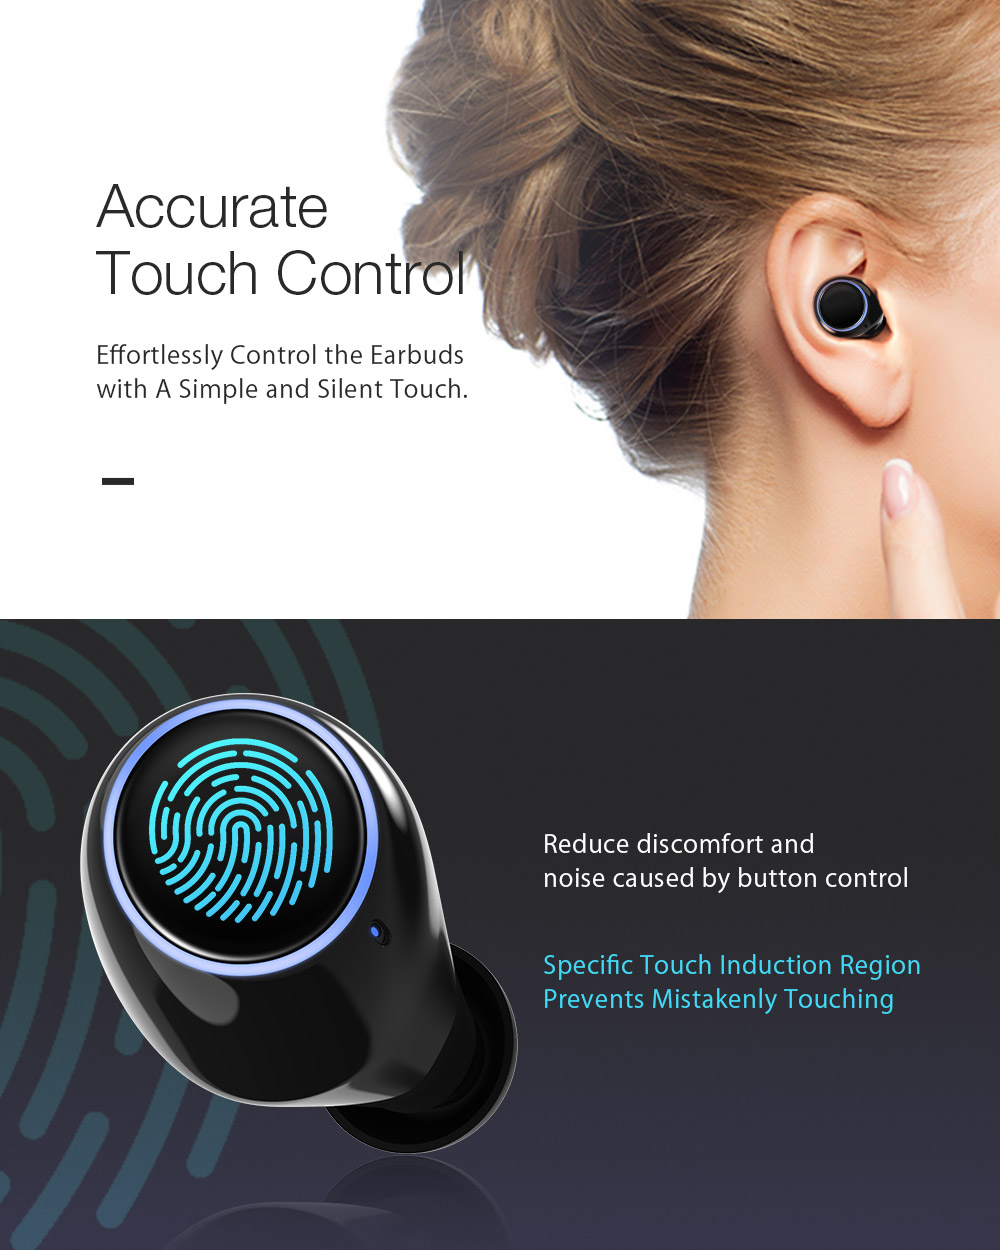 dcf77b283b3 ... BW-FYE3 Bluetooth 5.0 2600mAh True Wireless Earbuds when you purchased  at Amazon, contact service@blitzwolf.com to get a promotion code.